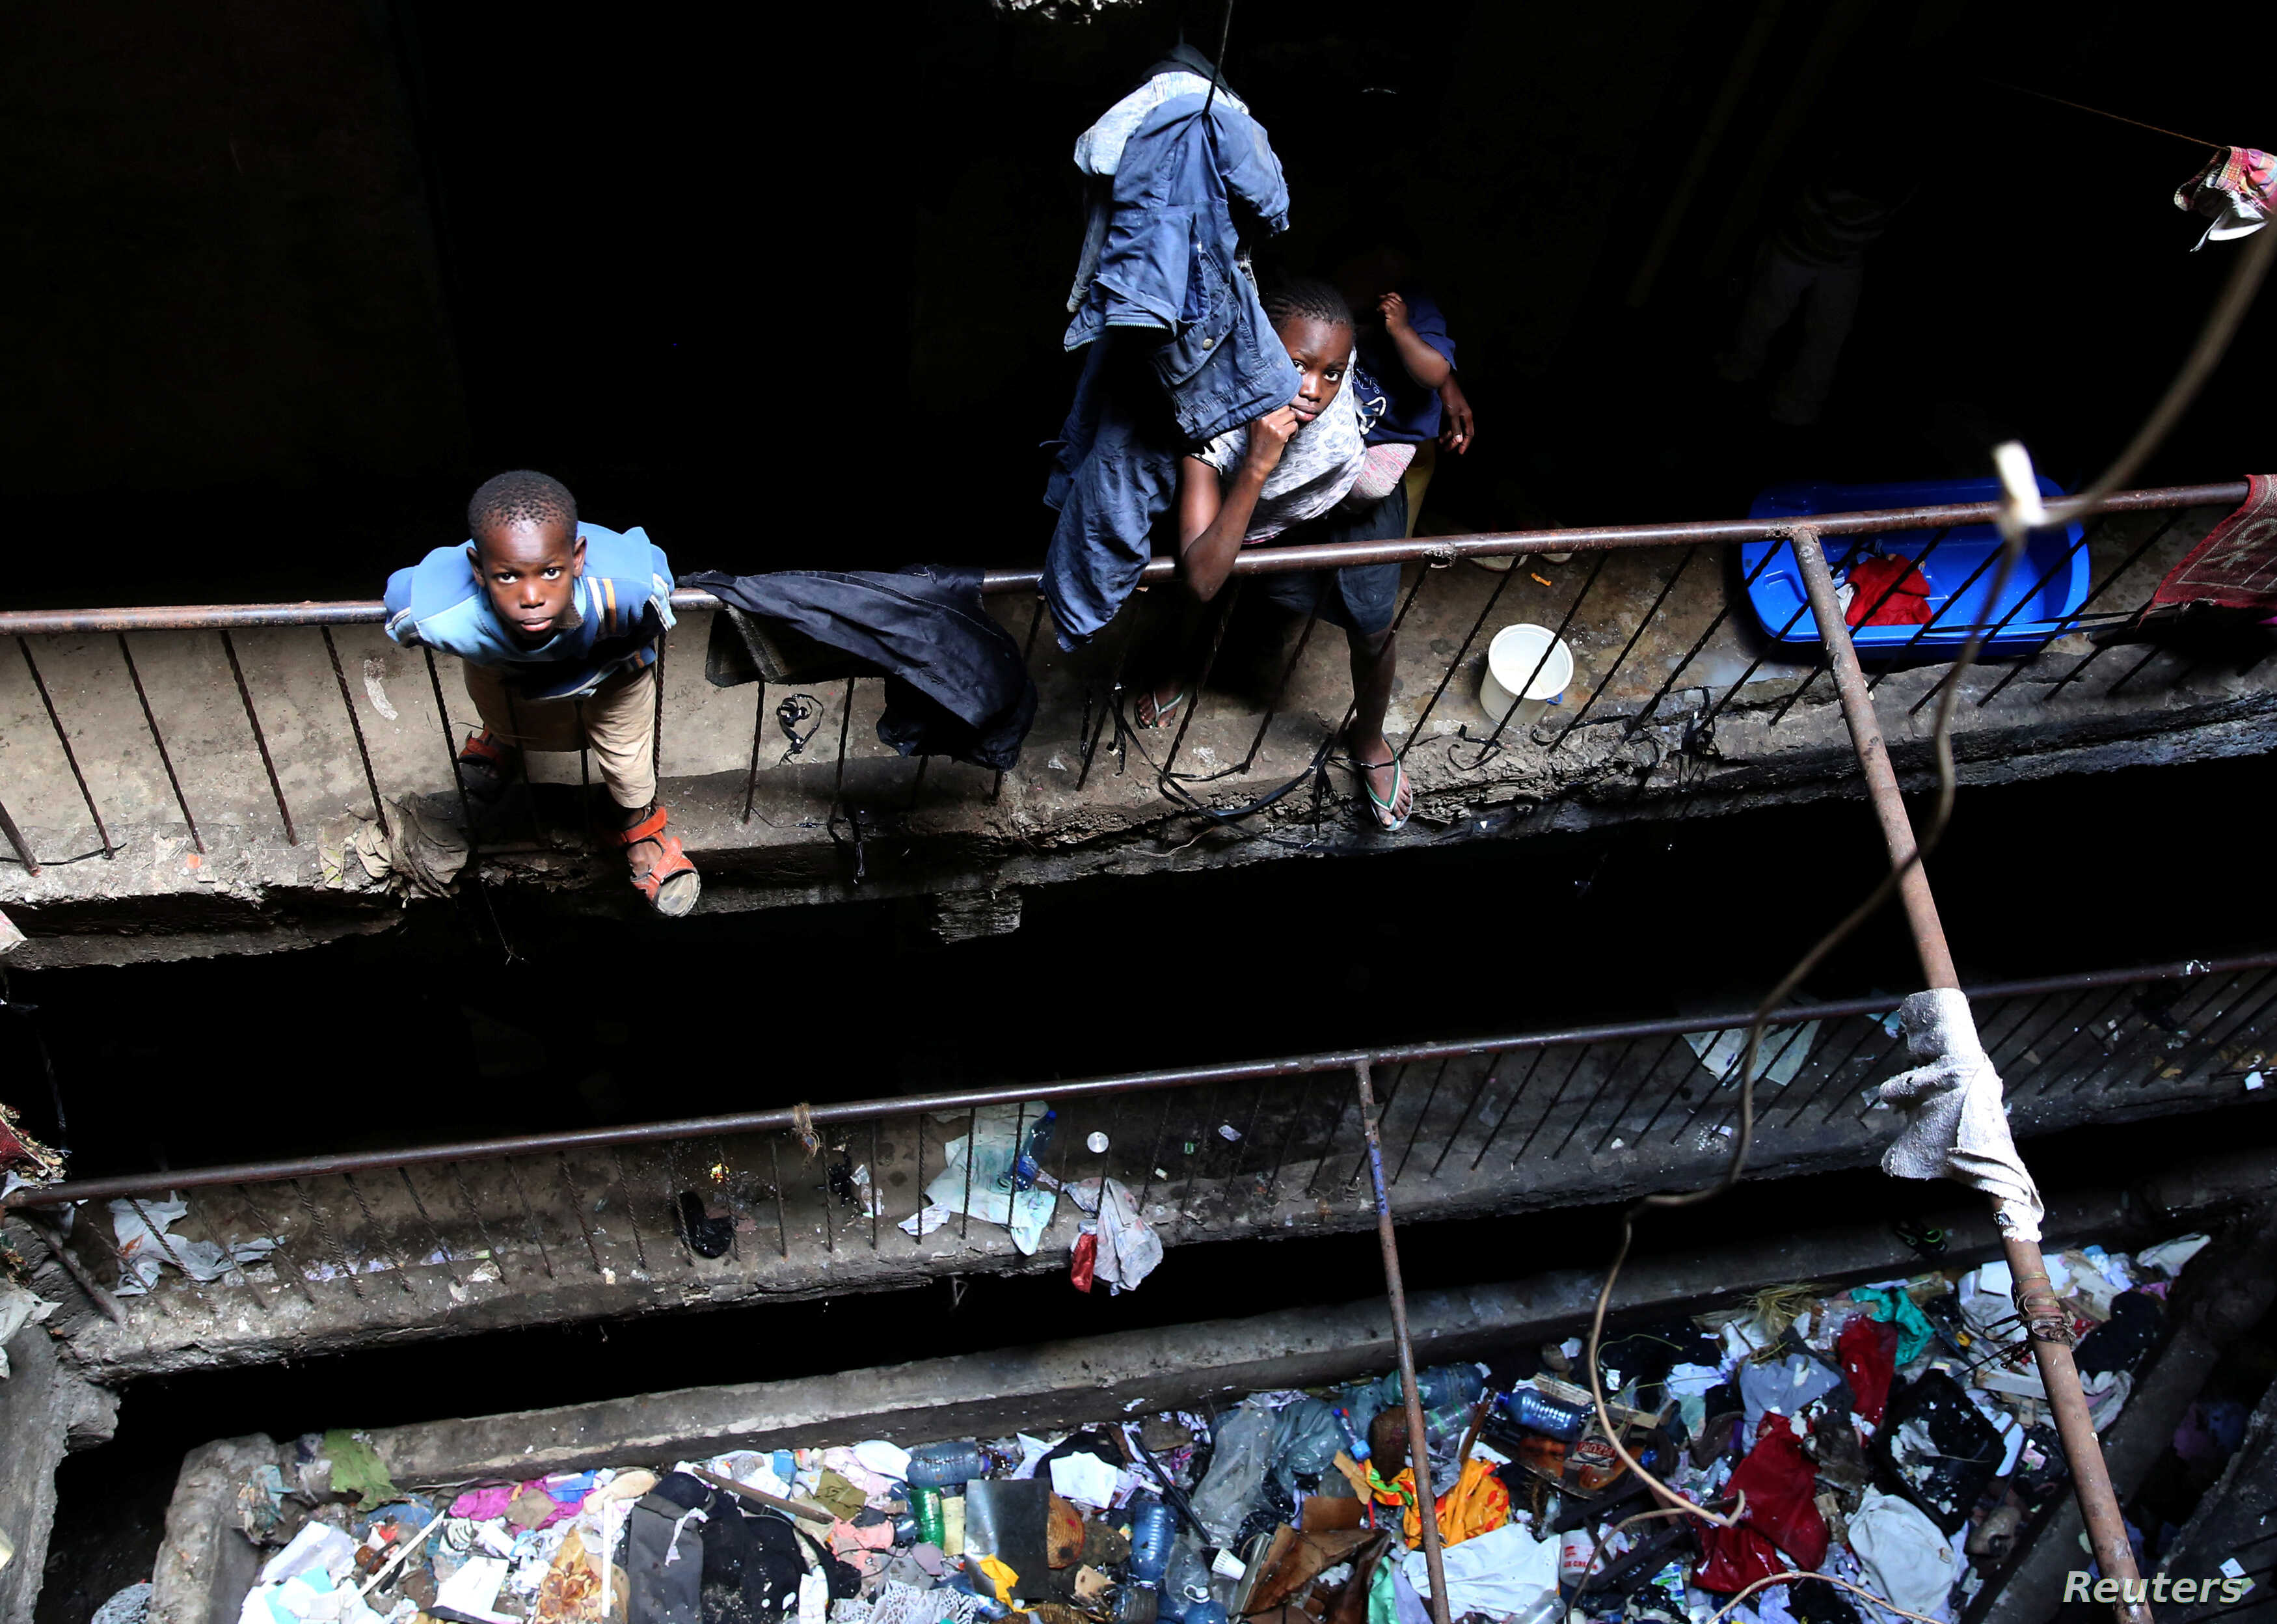 Children stand amid trash in a building earmarked for demolition in the Mathare neighborhood of Nairobi, Kenya, May 17, 2016.